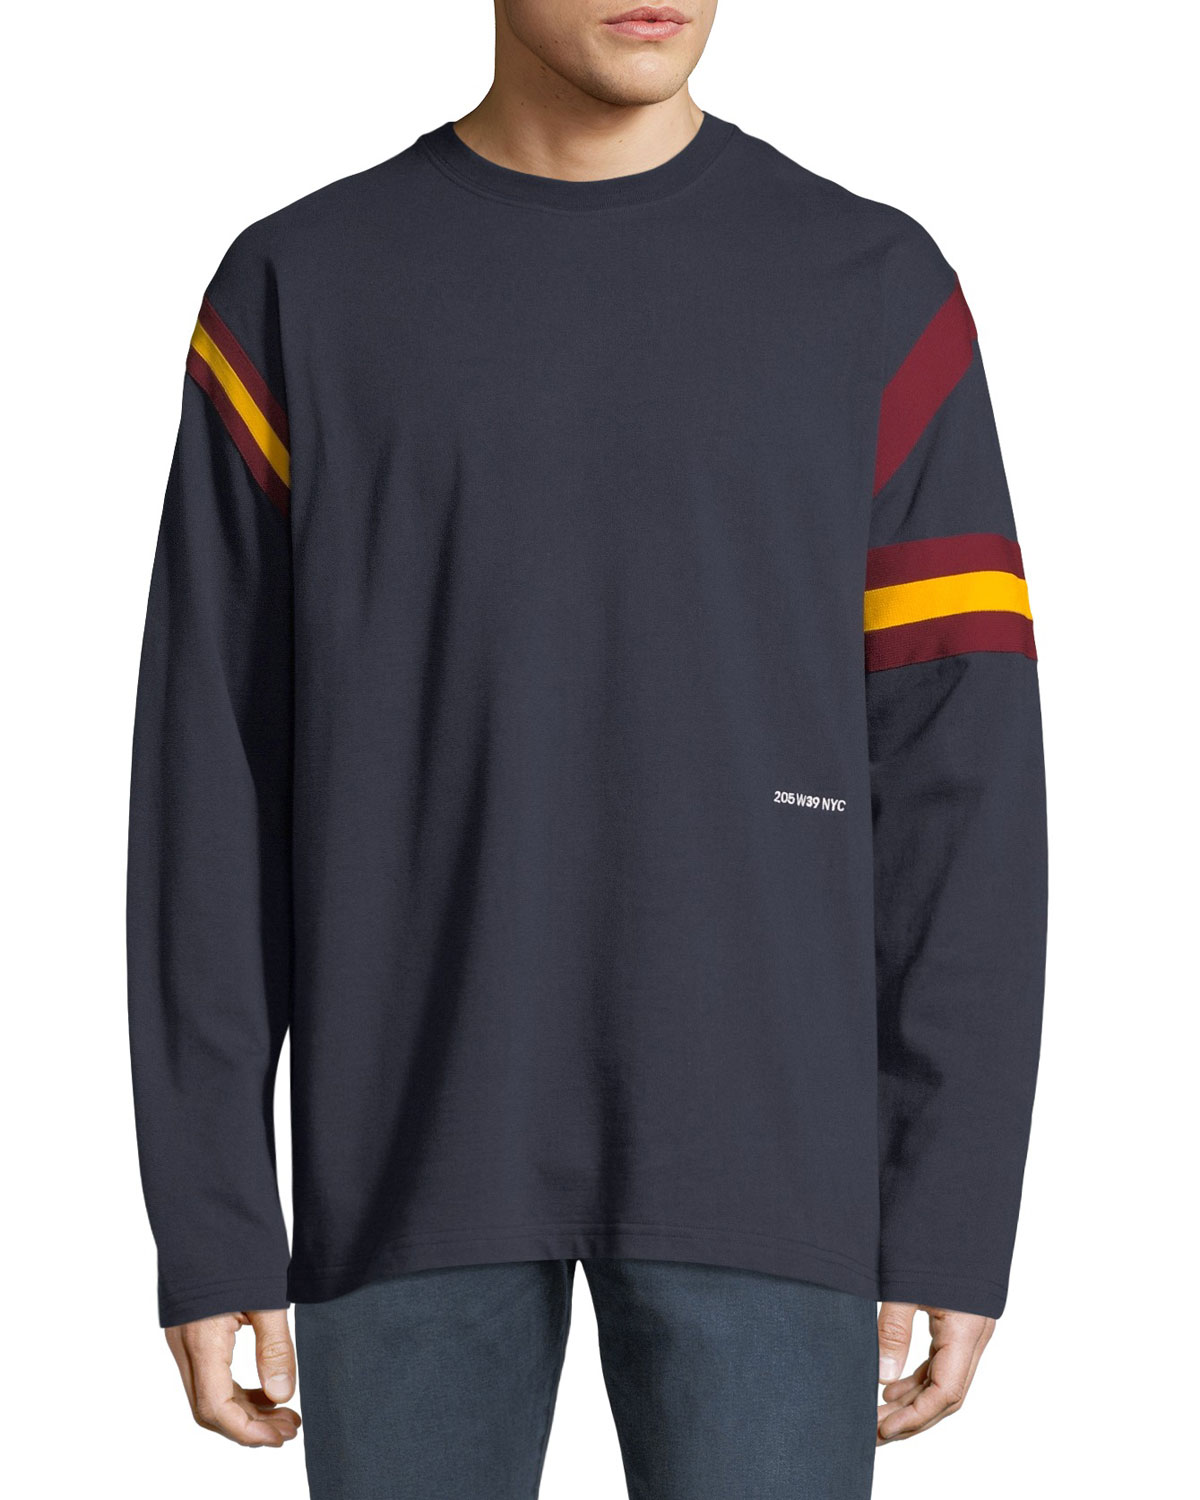 201a52adcd72 CALVIN KLEIN 205W39NYC Men's Long-Sleeve Rugby T-Shirt | Neiman Marcus